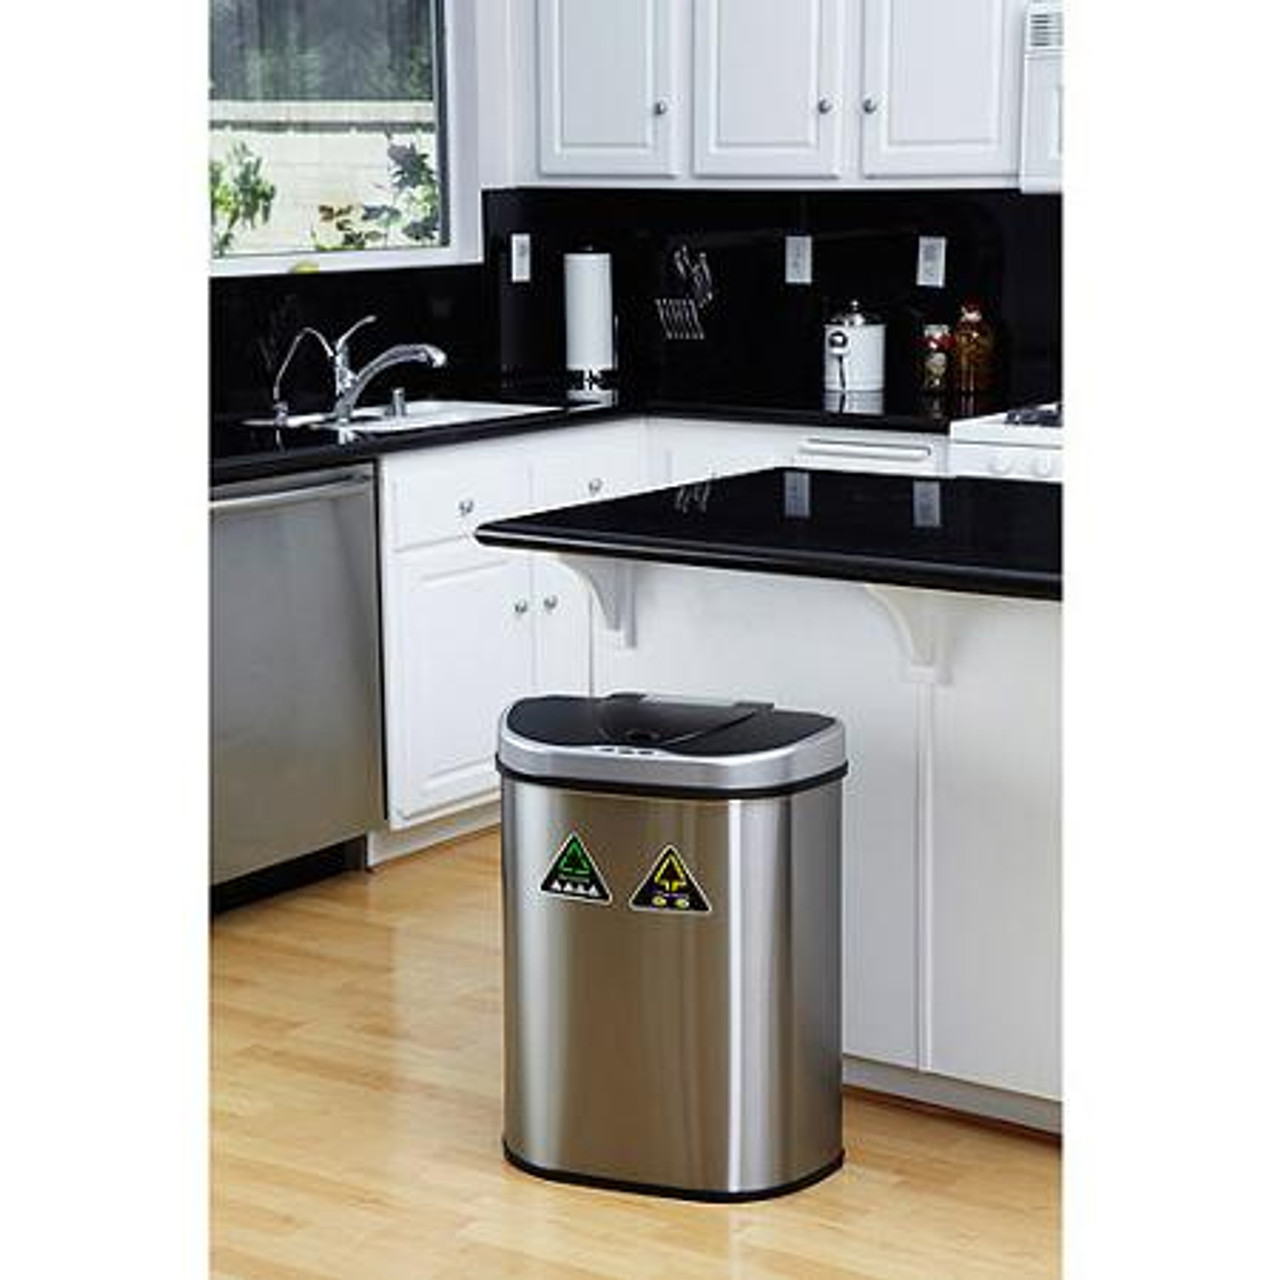 18 Gallon Touchless Automatic Kitchen Recycling Trash Can DZT-70-11R in Kitchen